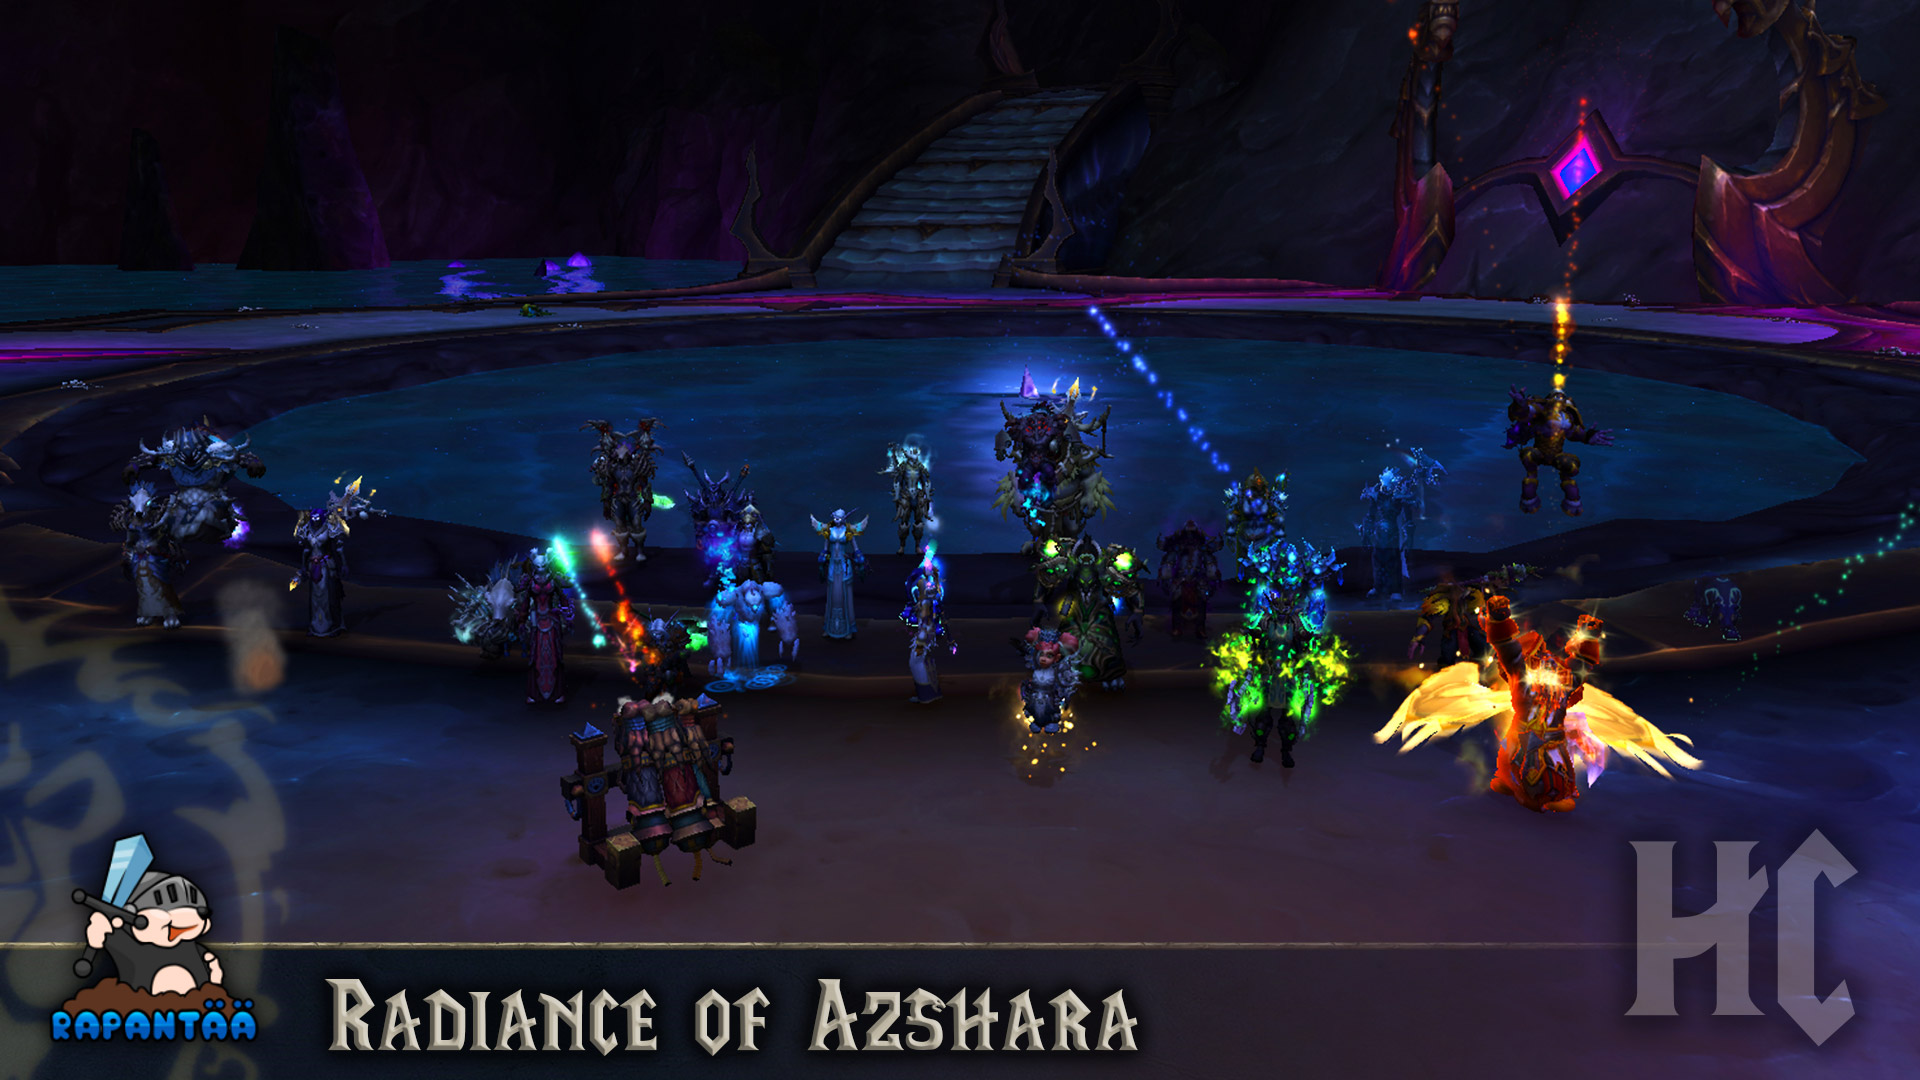 radiance-of-azshara-11.07.2019